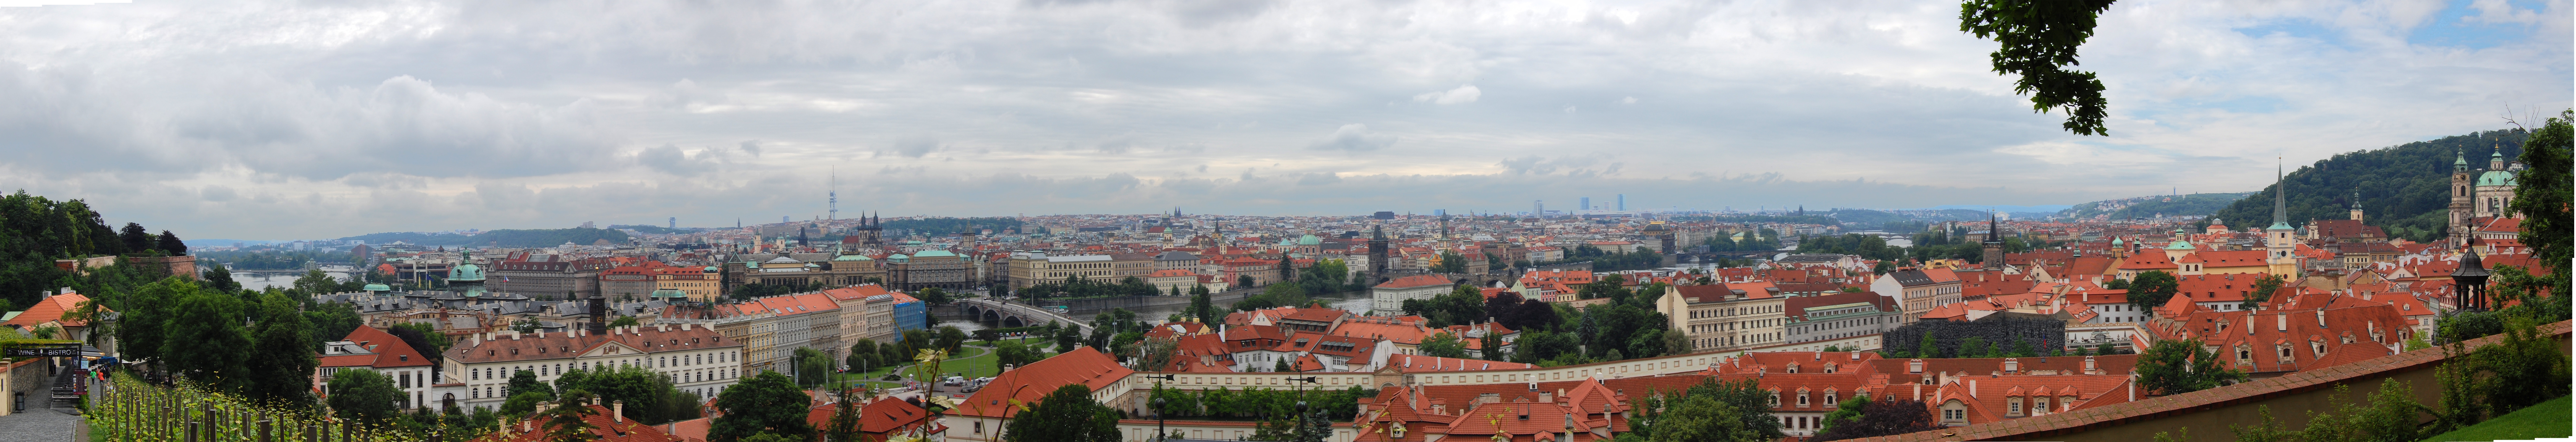 Prague panorama from near HD Wallpaper